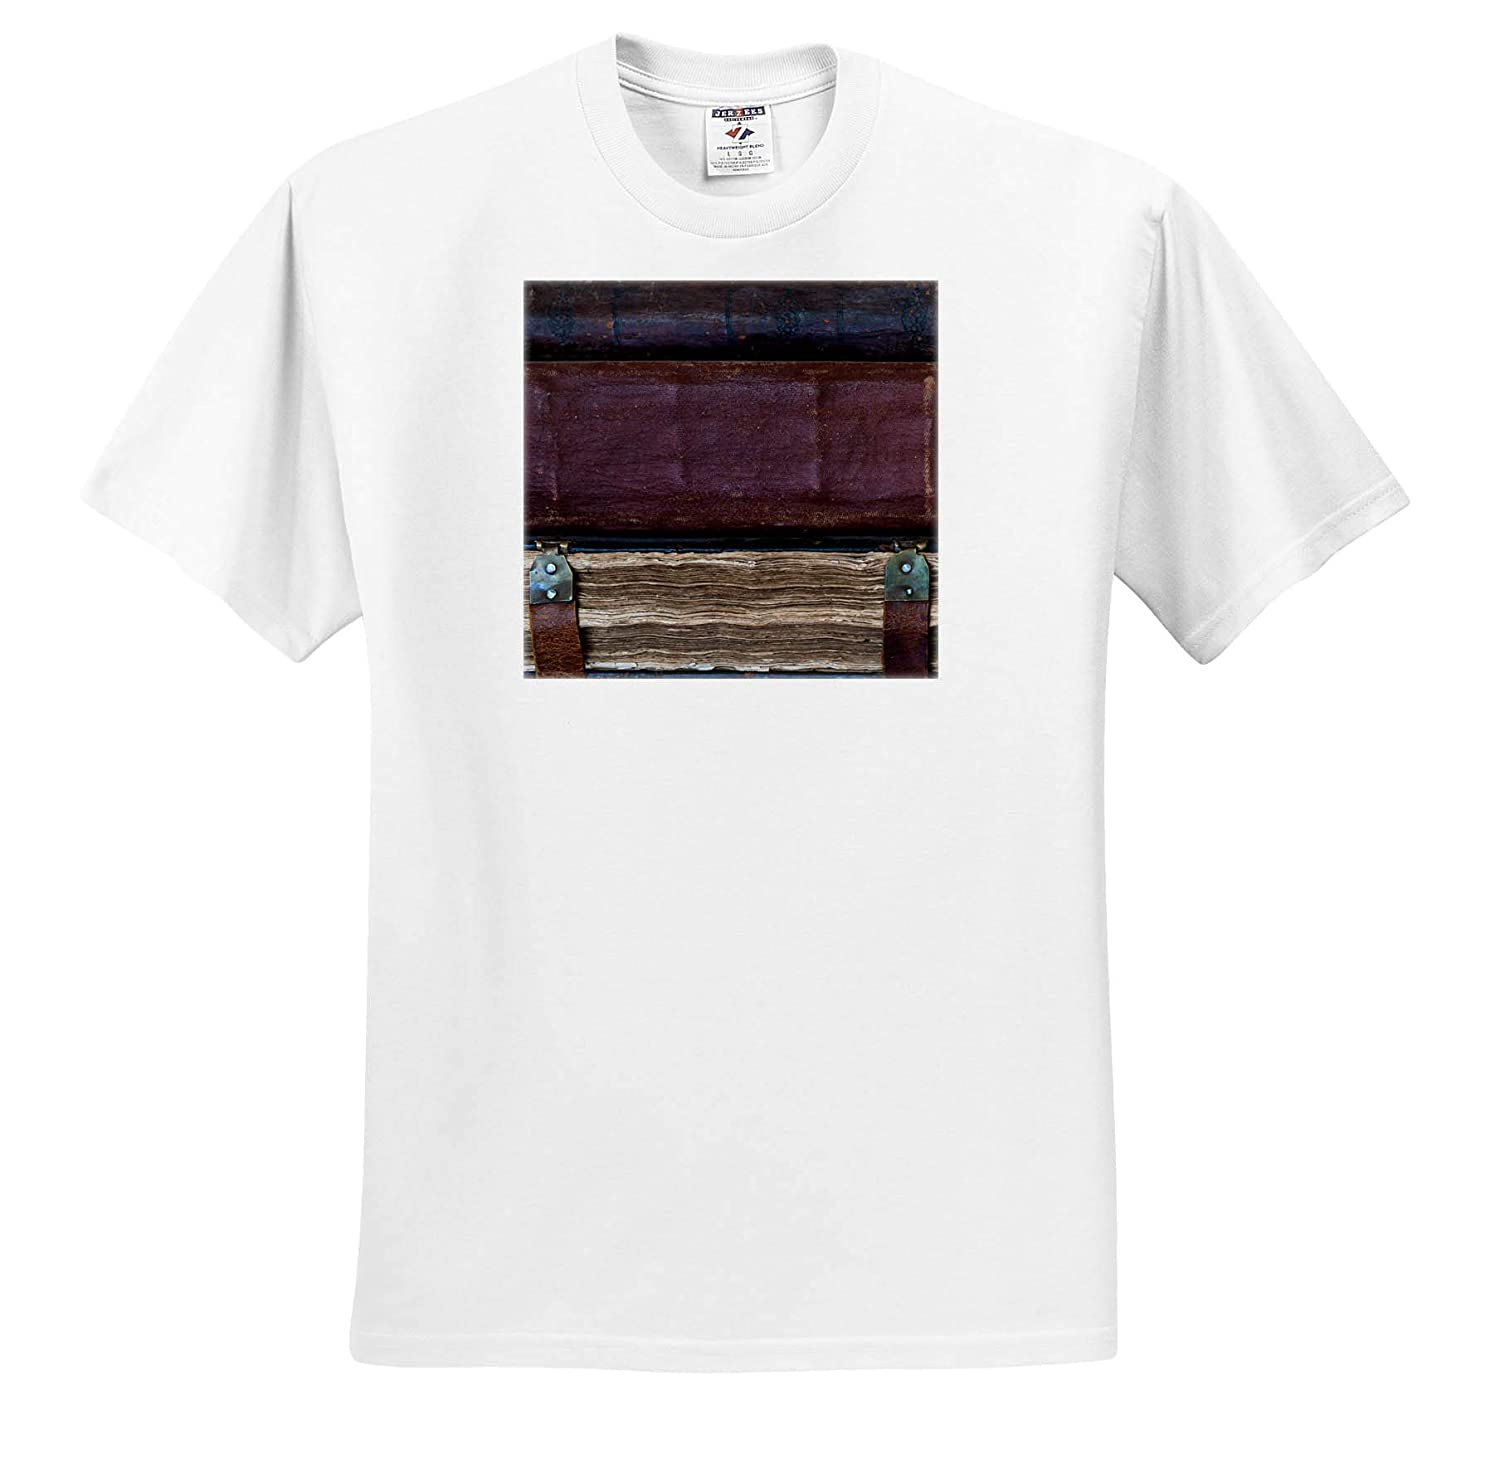 Objects Books Image of Three Ancient Books Stacked one Upon The Other T-Shirts 3dRose Alexis Photography